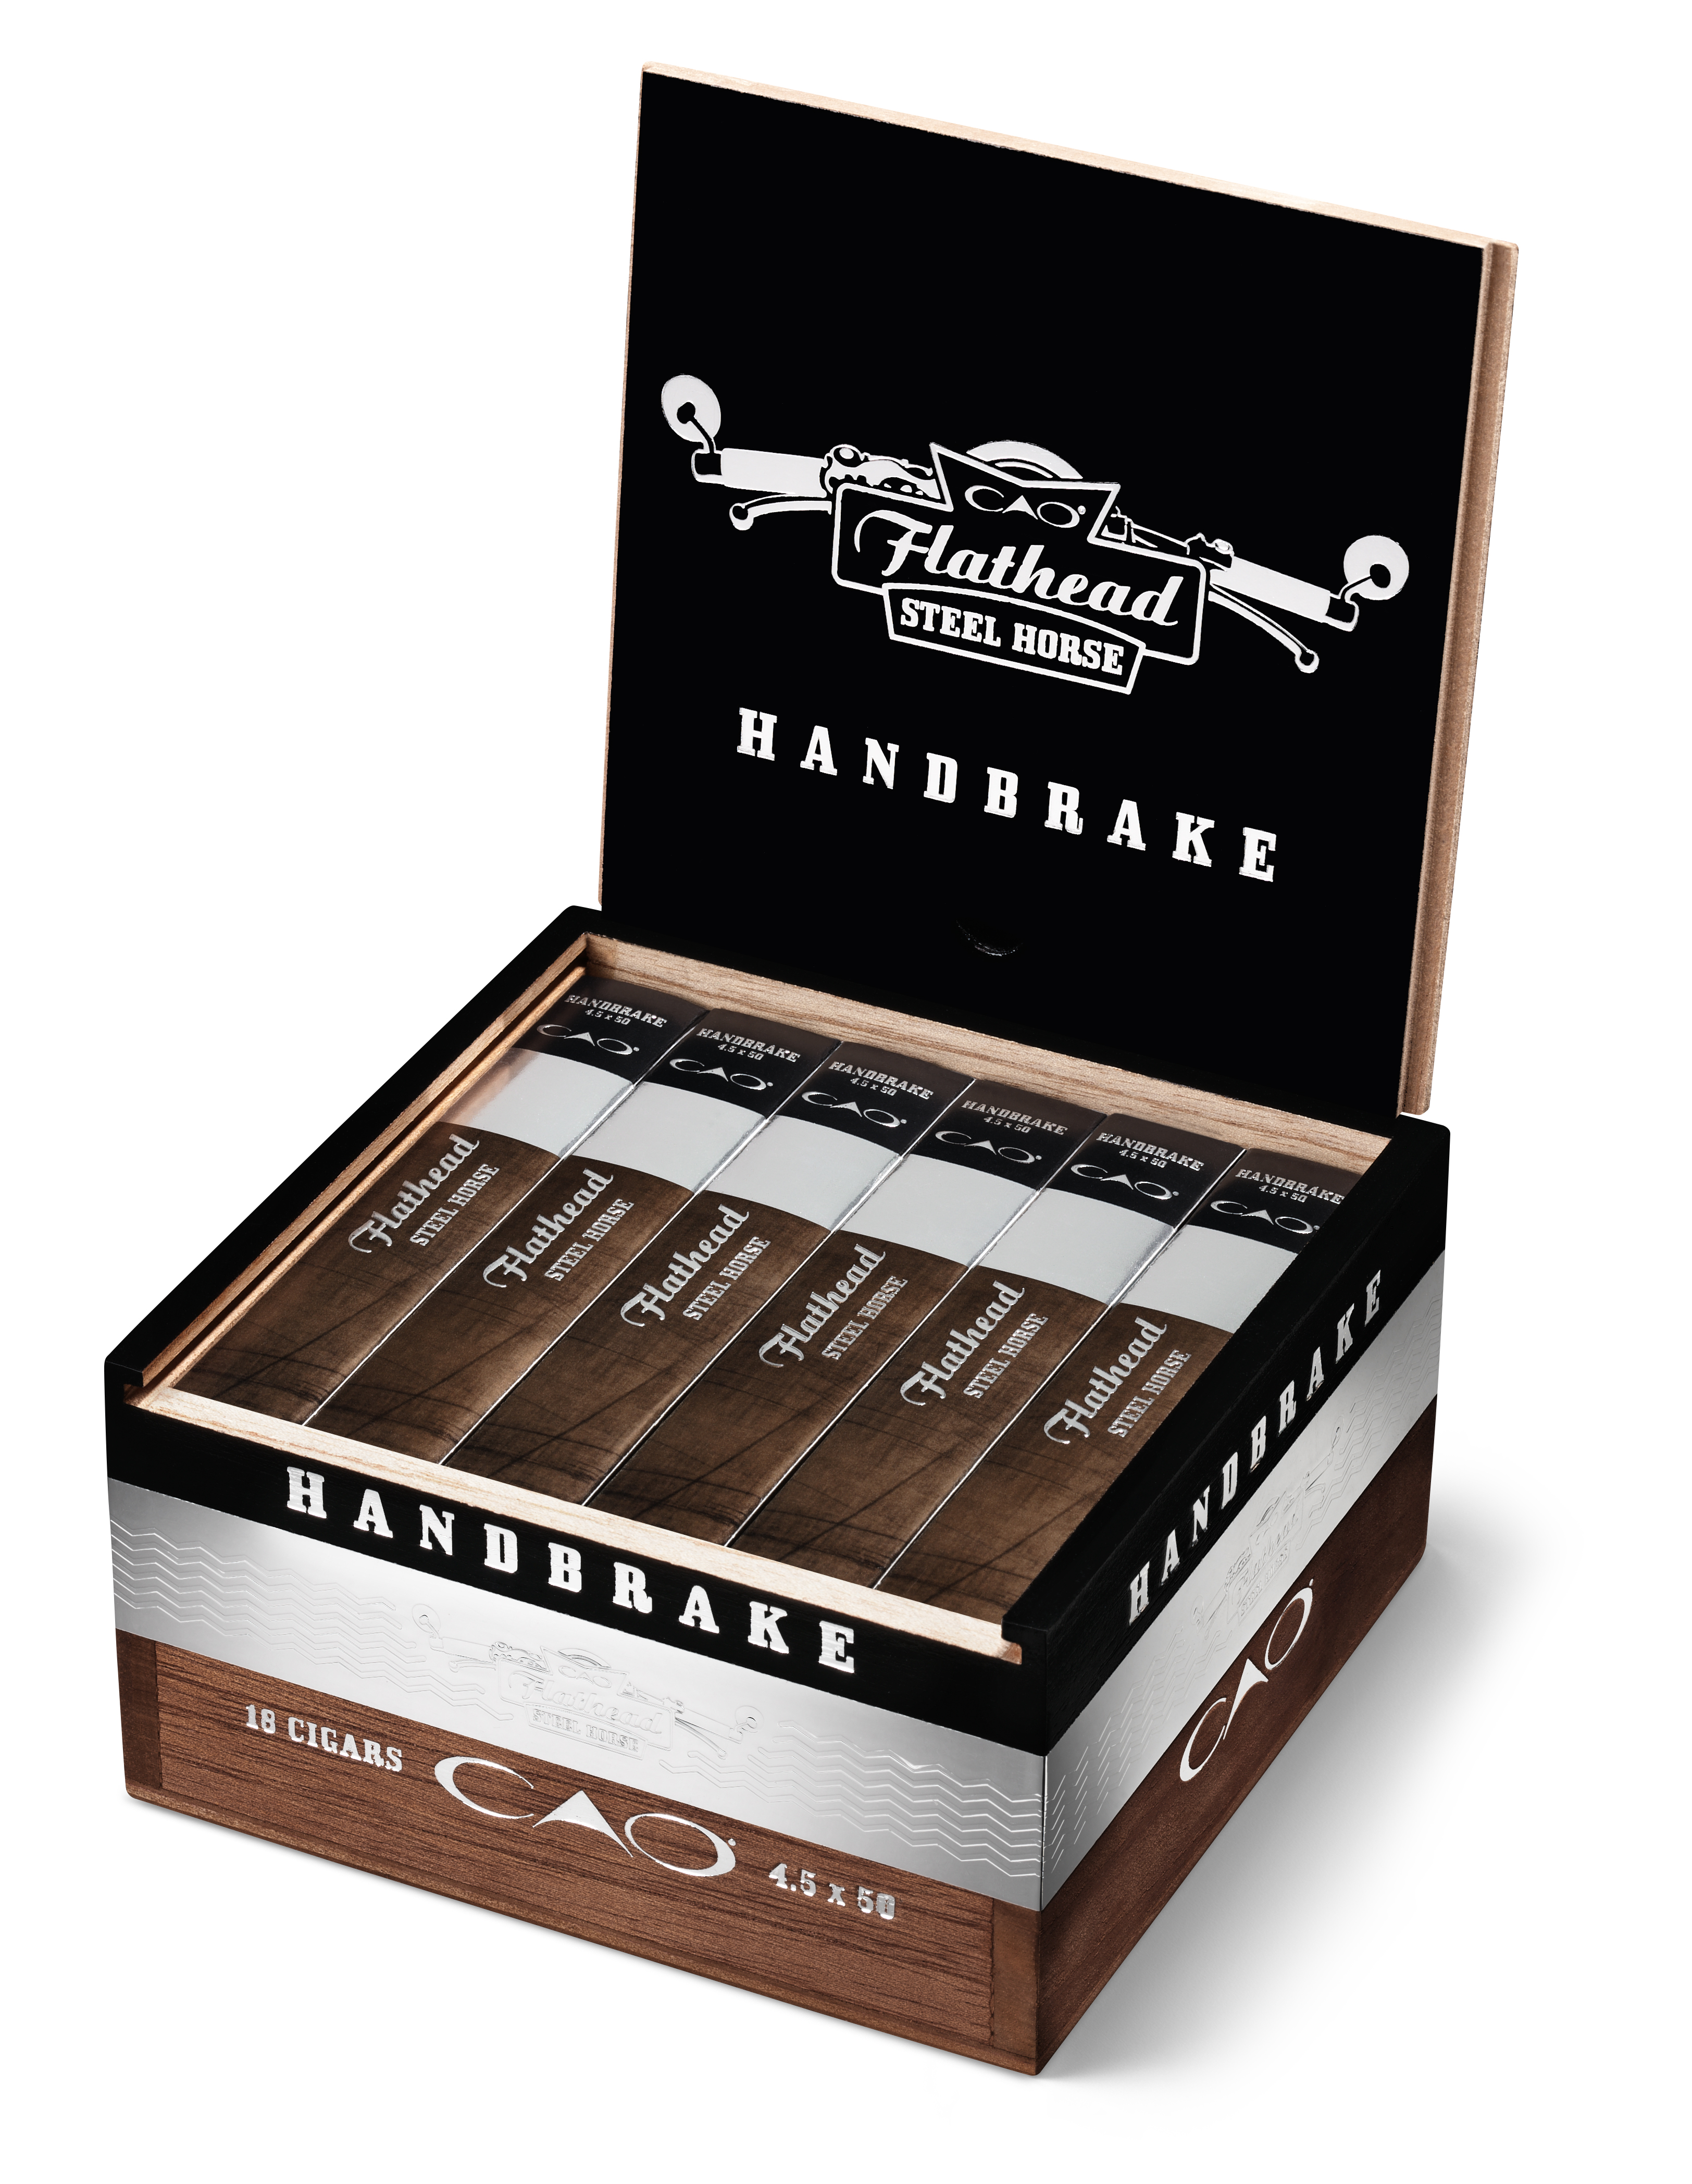 Cigar News: CAO Flathead Steel Horse Adds Two New Vitolas